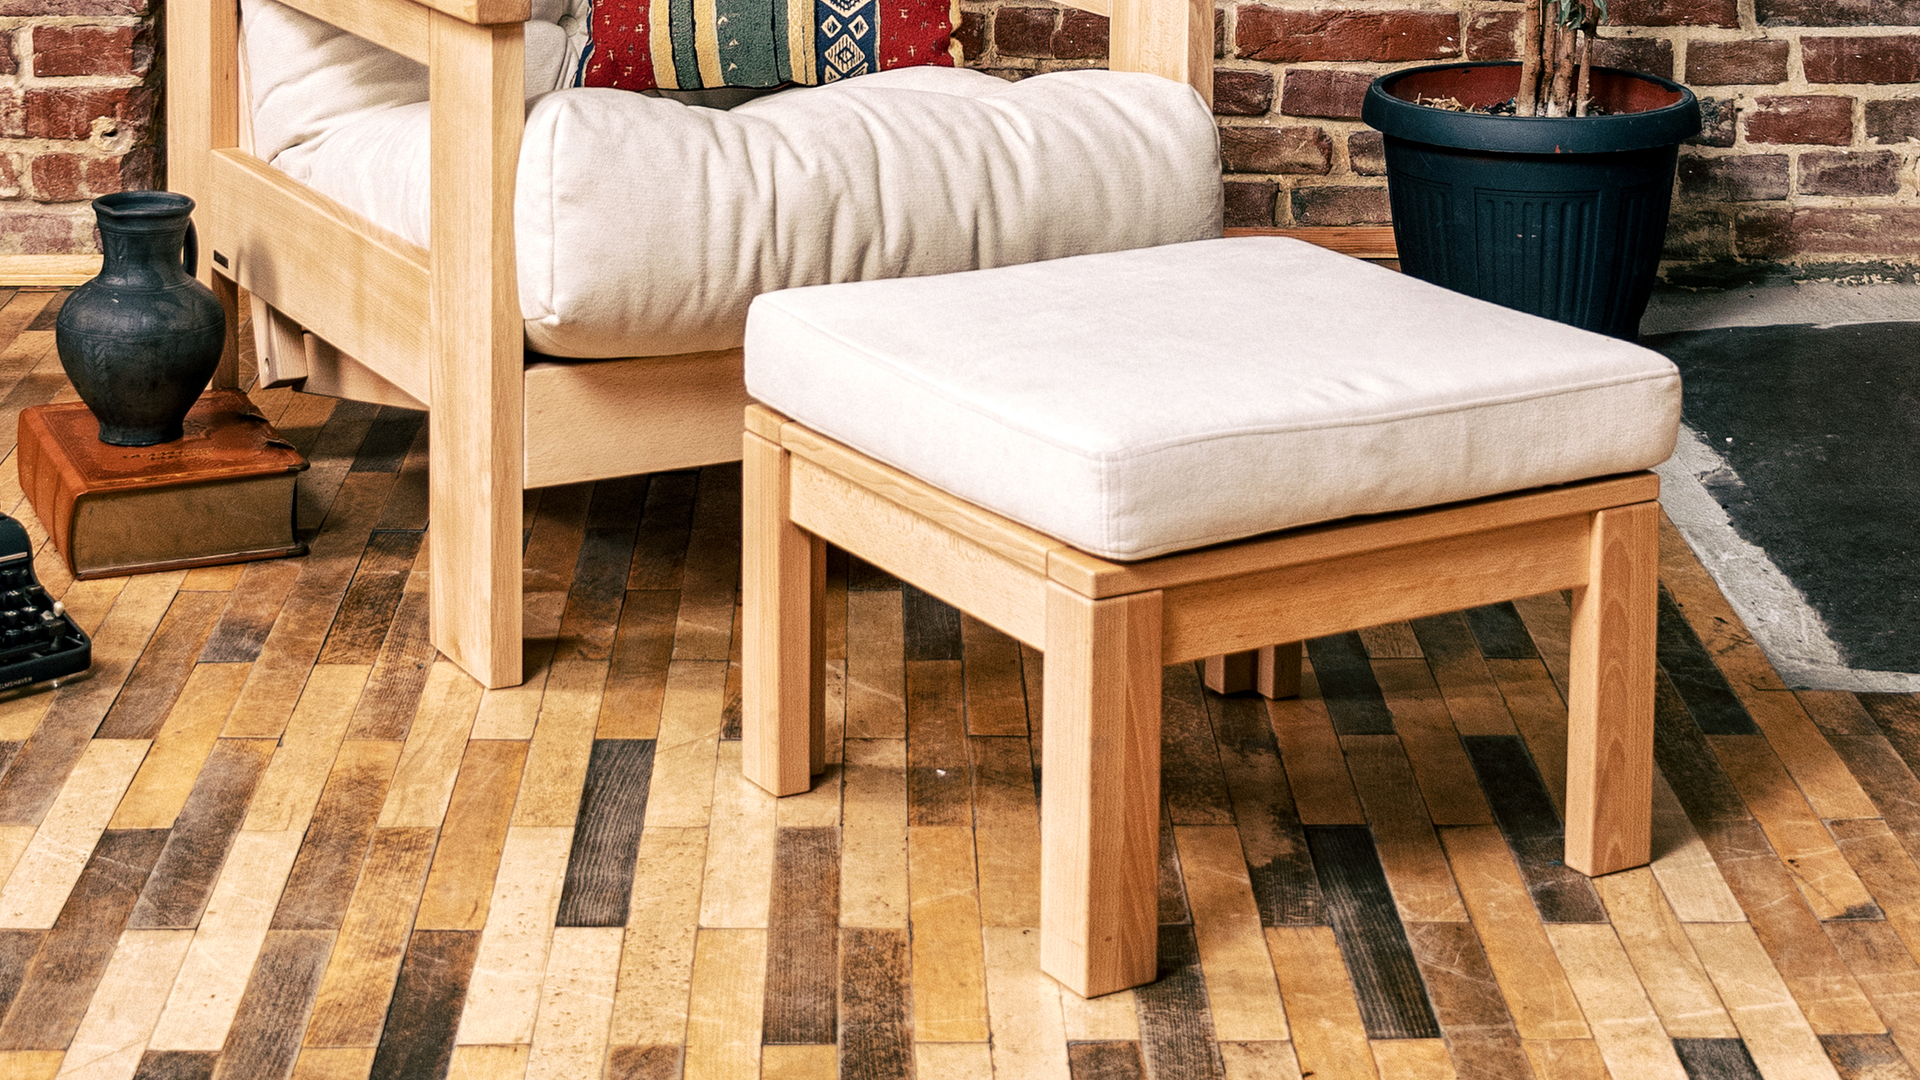 MEXICO multifunction table with a footrest, oiled wood (linseed oil) - cream